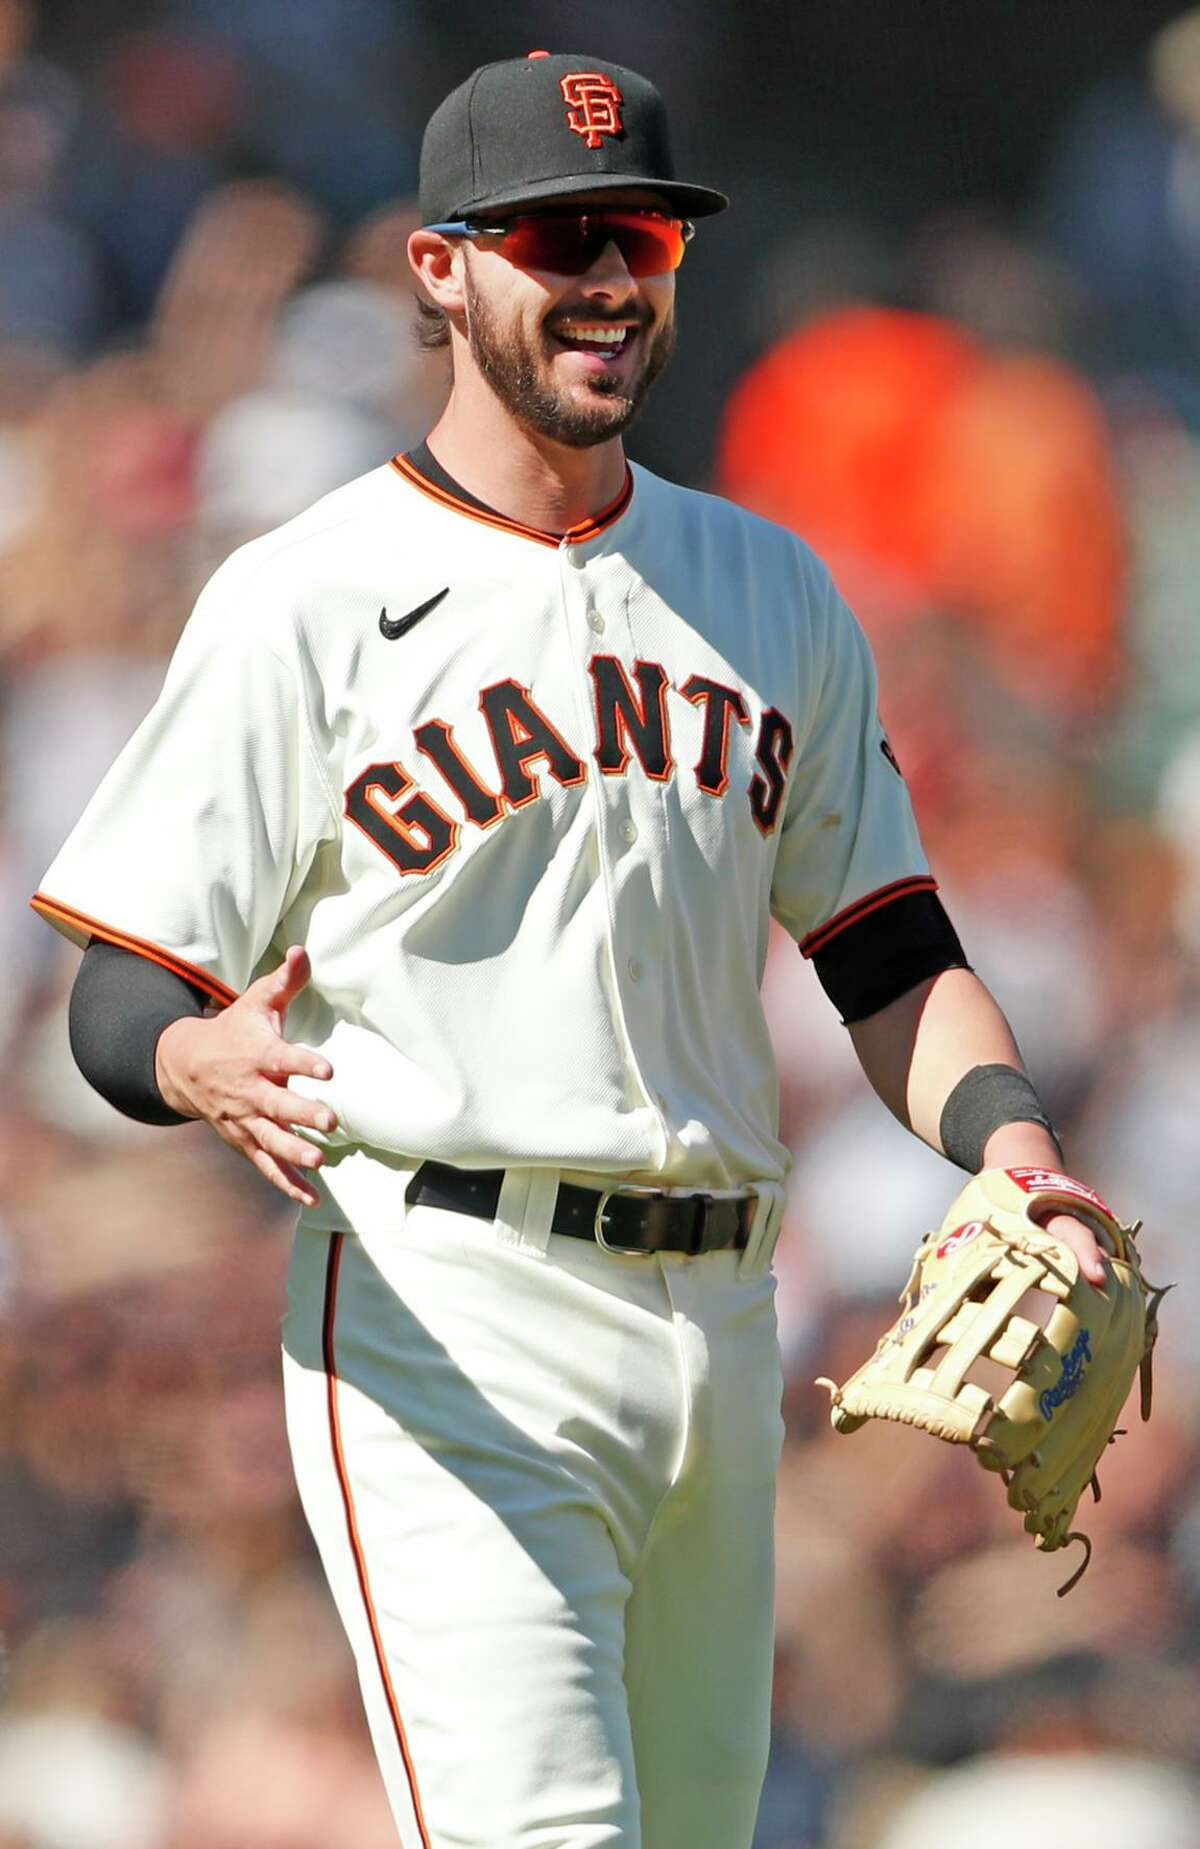 San Francisco Giants' Kris Bryant celebrates Giants' 5-3 win over Houston Astros in MLB game at Oracle Park in San Francisco, Calif., on Sunday, August 1, 2021.